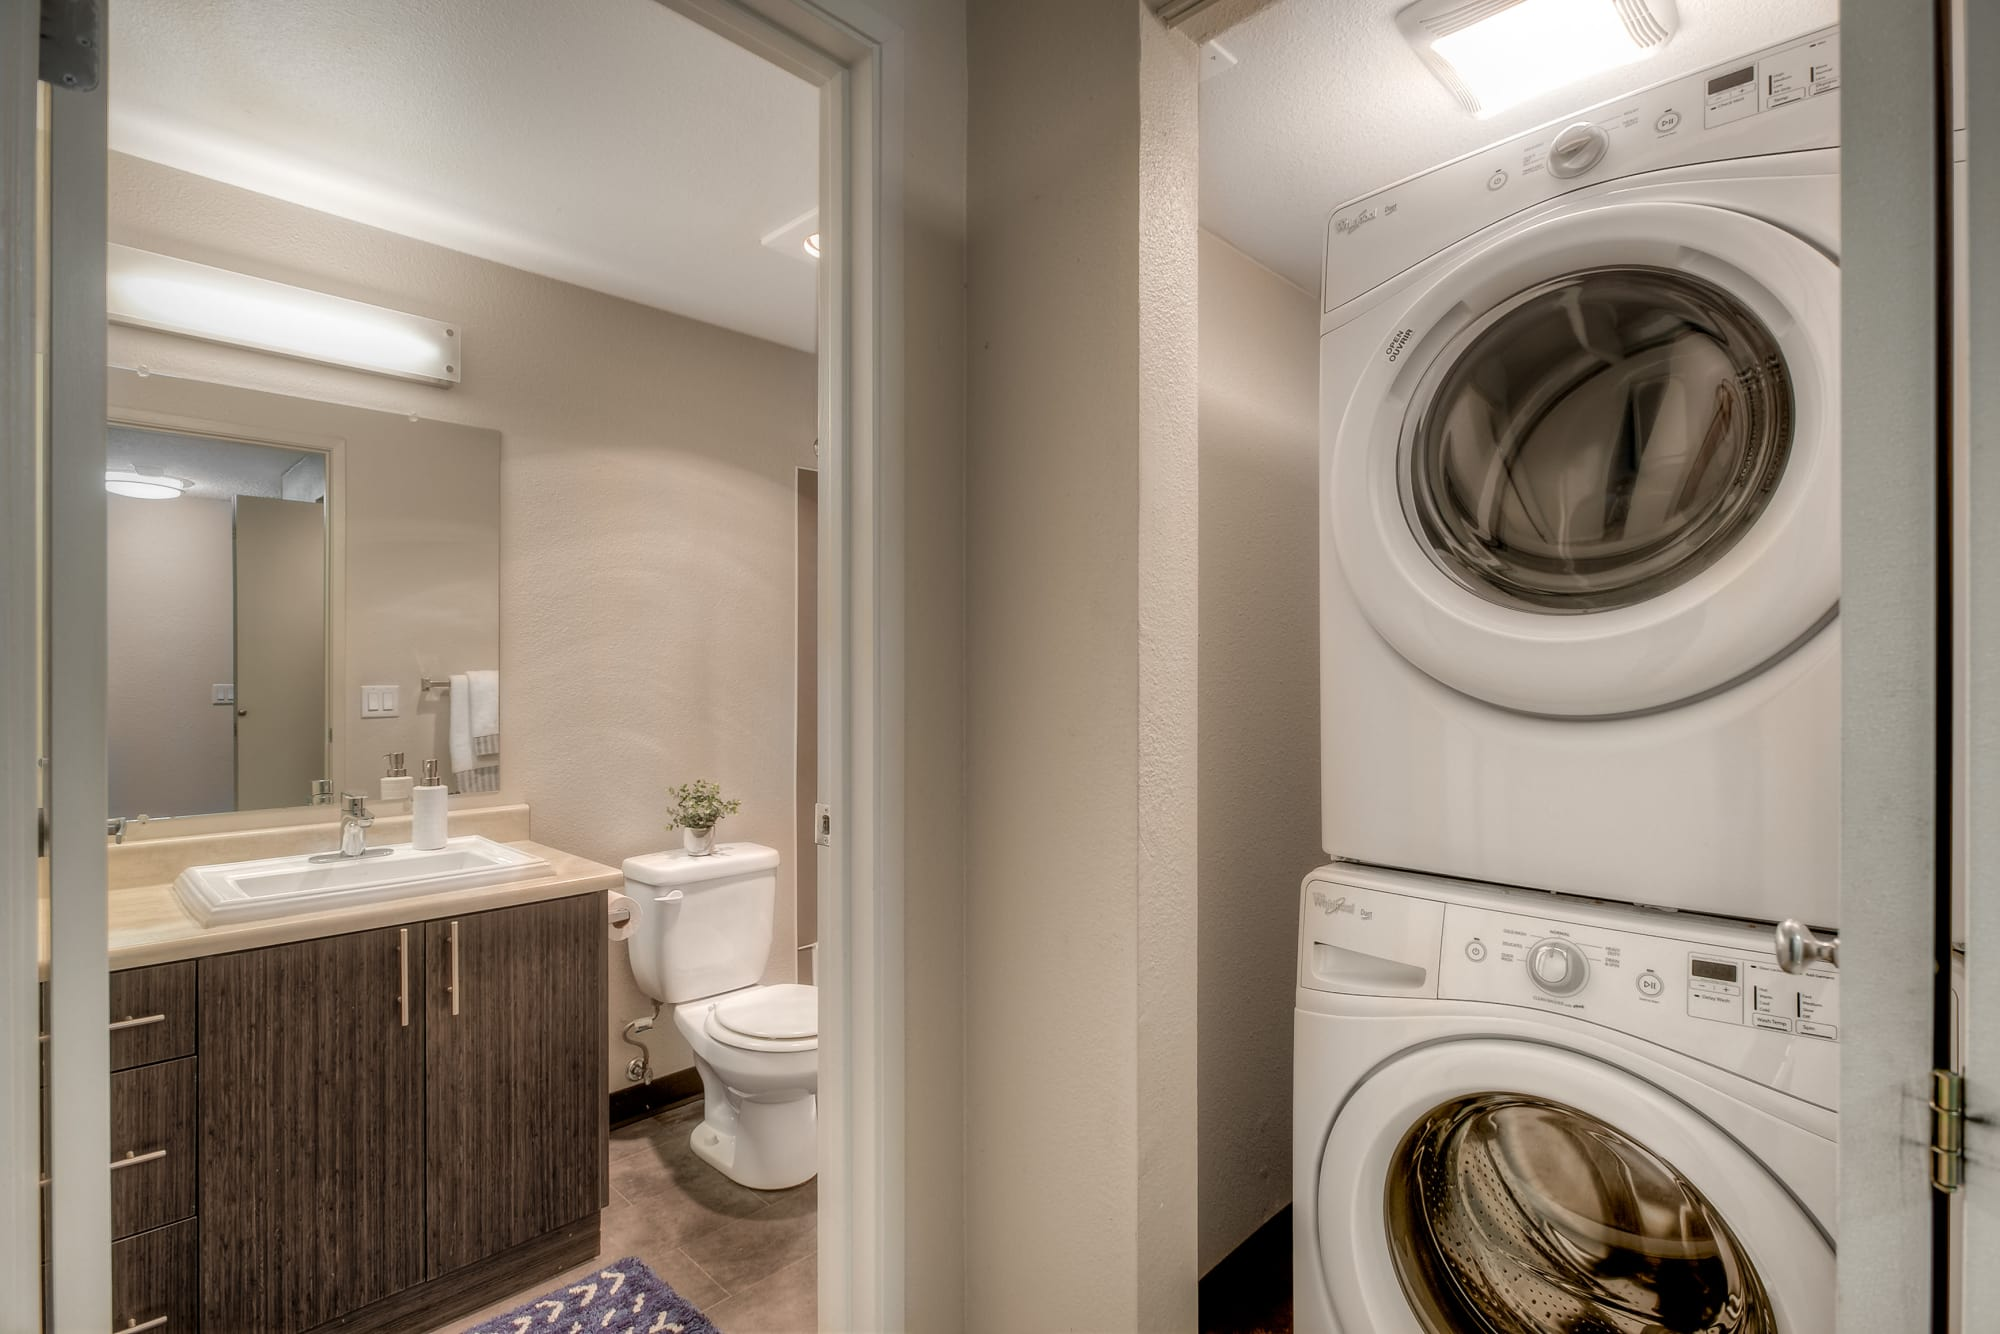 Bathroom and Washer/Dryer at Karbon Apartments